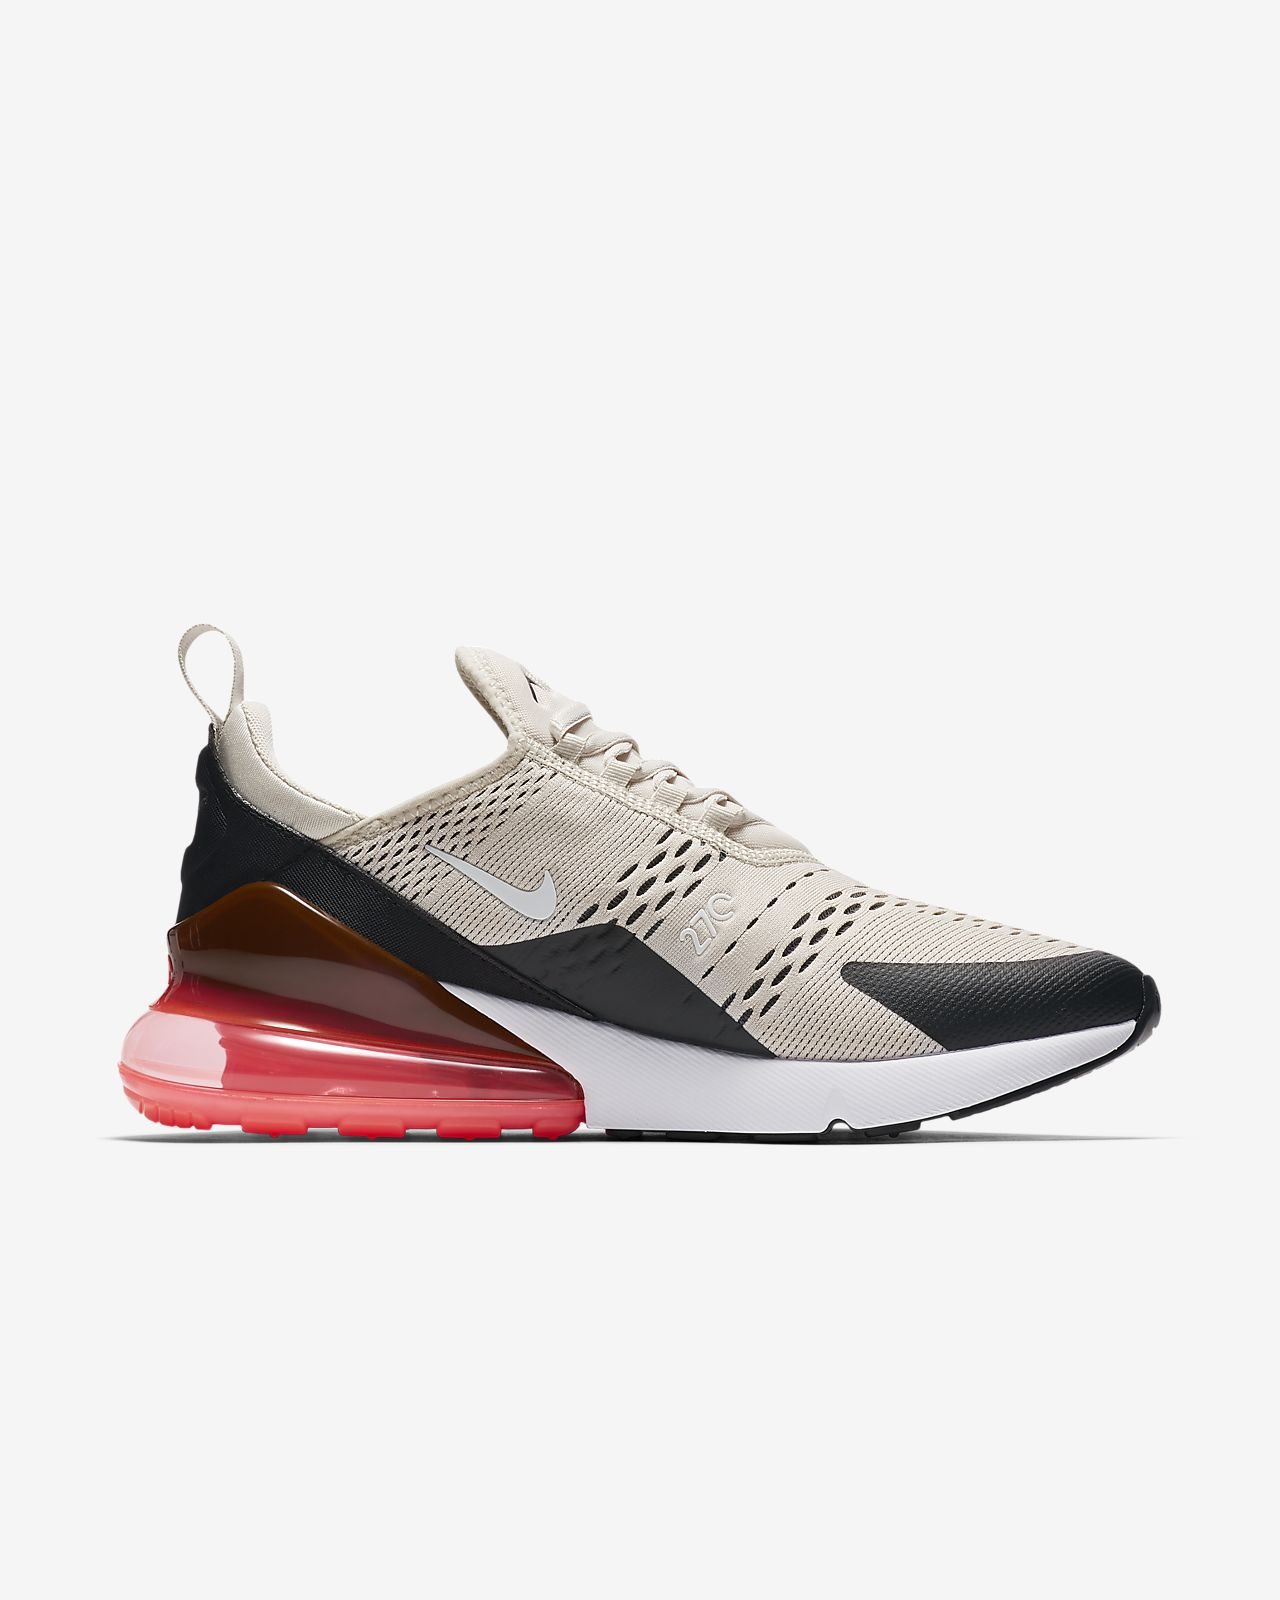 bb8dc1d426 Nike Air Max 270 Men's Shoe. Nike.com GB